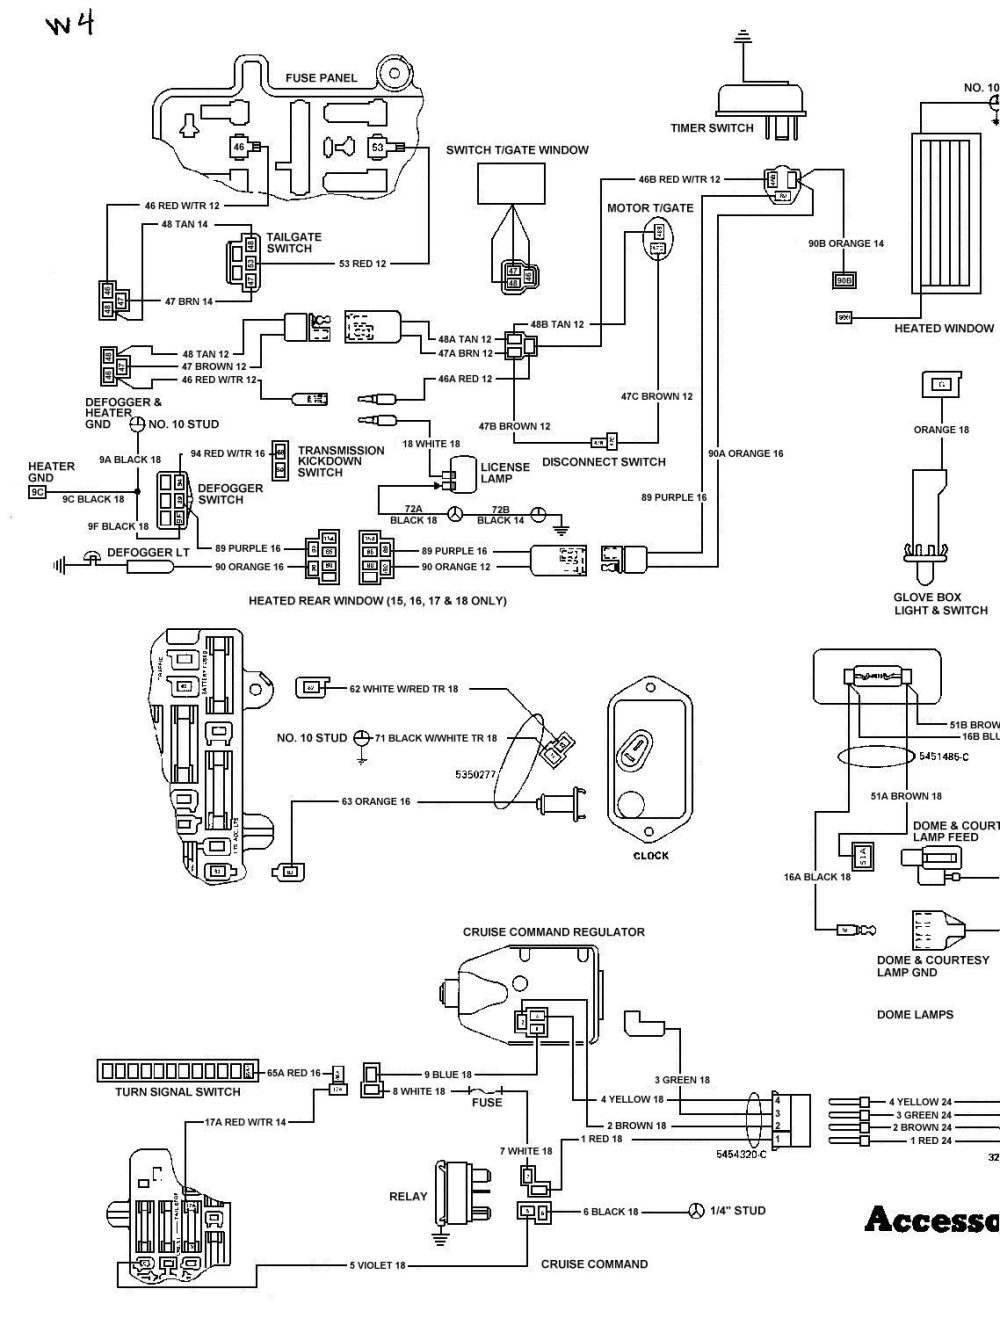 medium resolution of jeep j10 wiring wiring diagram todays jeep j10 wiring schematics jeep j10 wiring